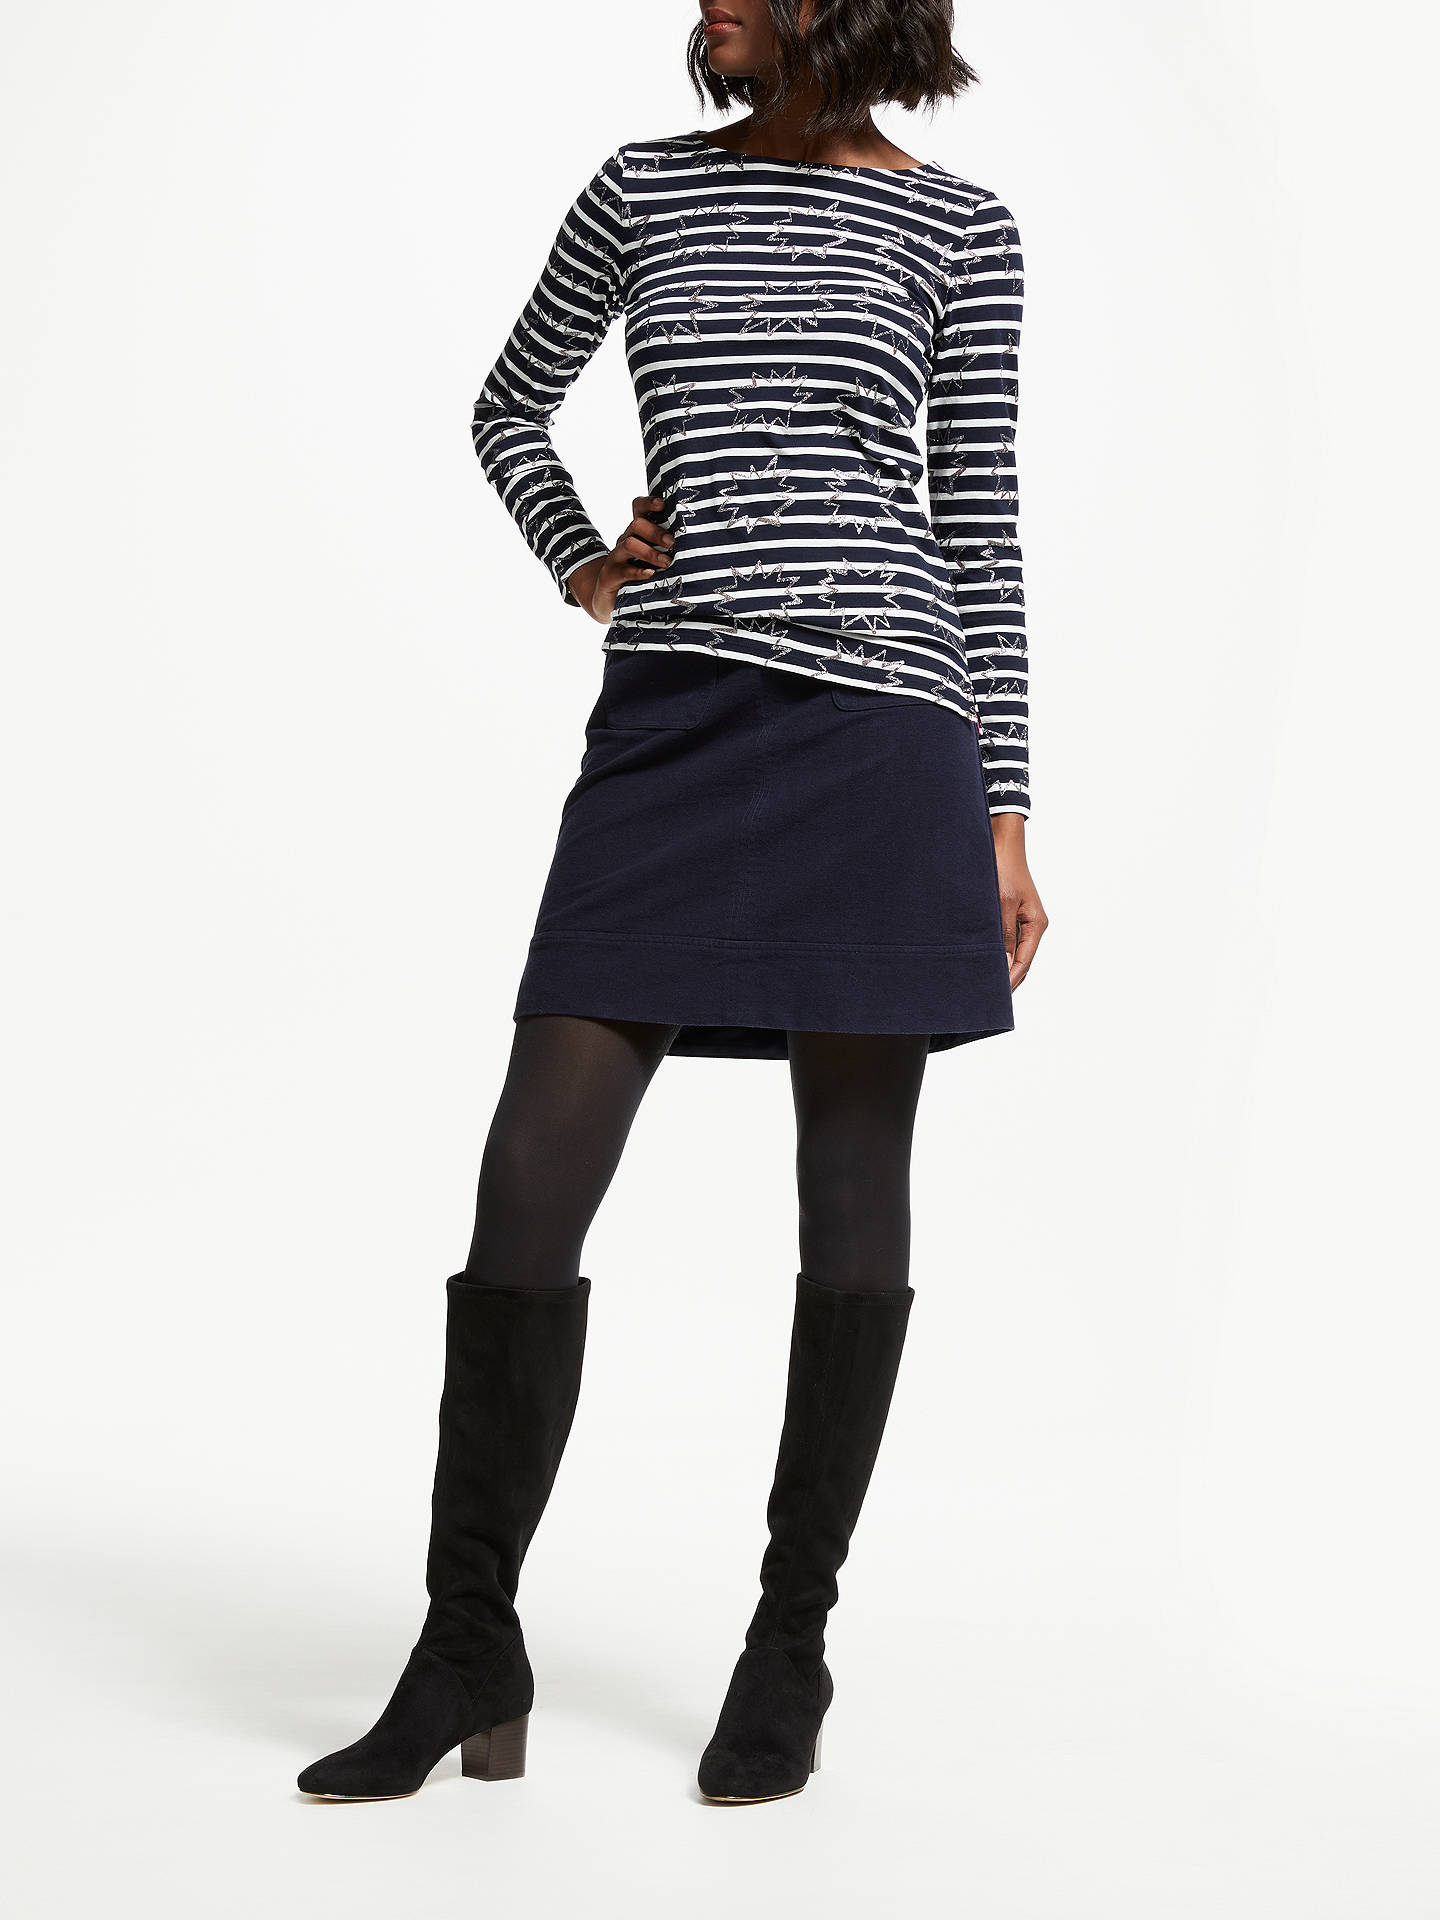 BuyBoden Long Sleeve Glitter Embroidered Breton Top, Blue/White, 8 Online at johnlewis.com